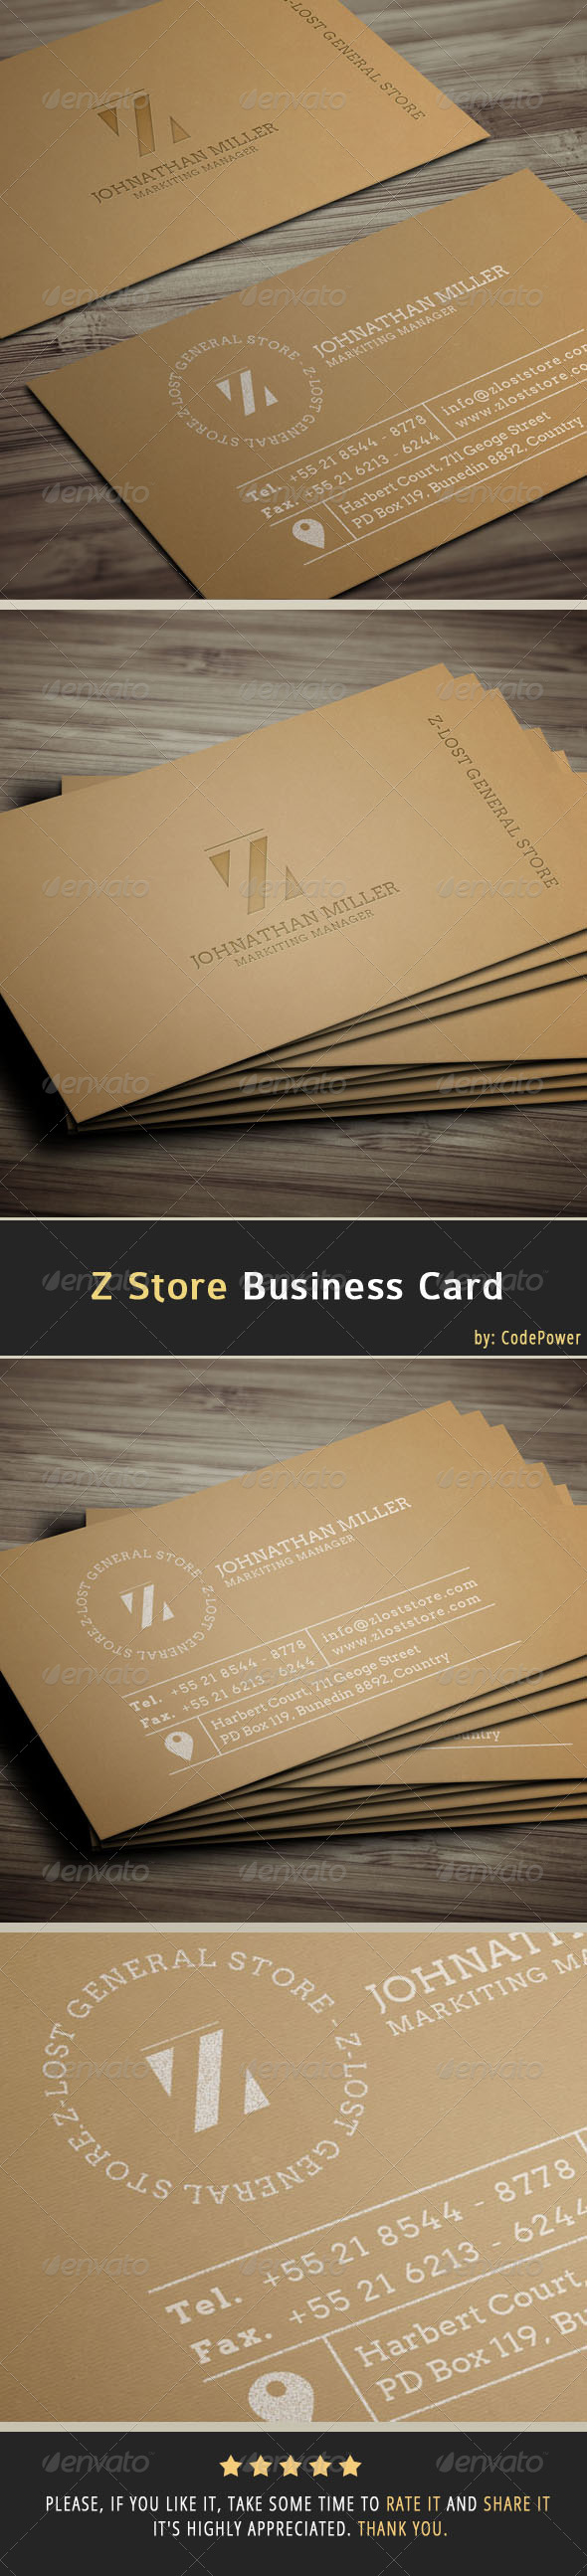 Z Store Business Card - Creative Business Cards